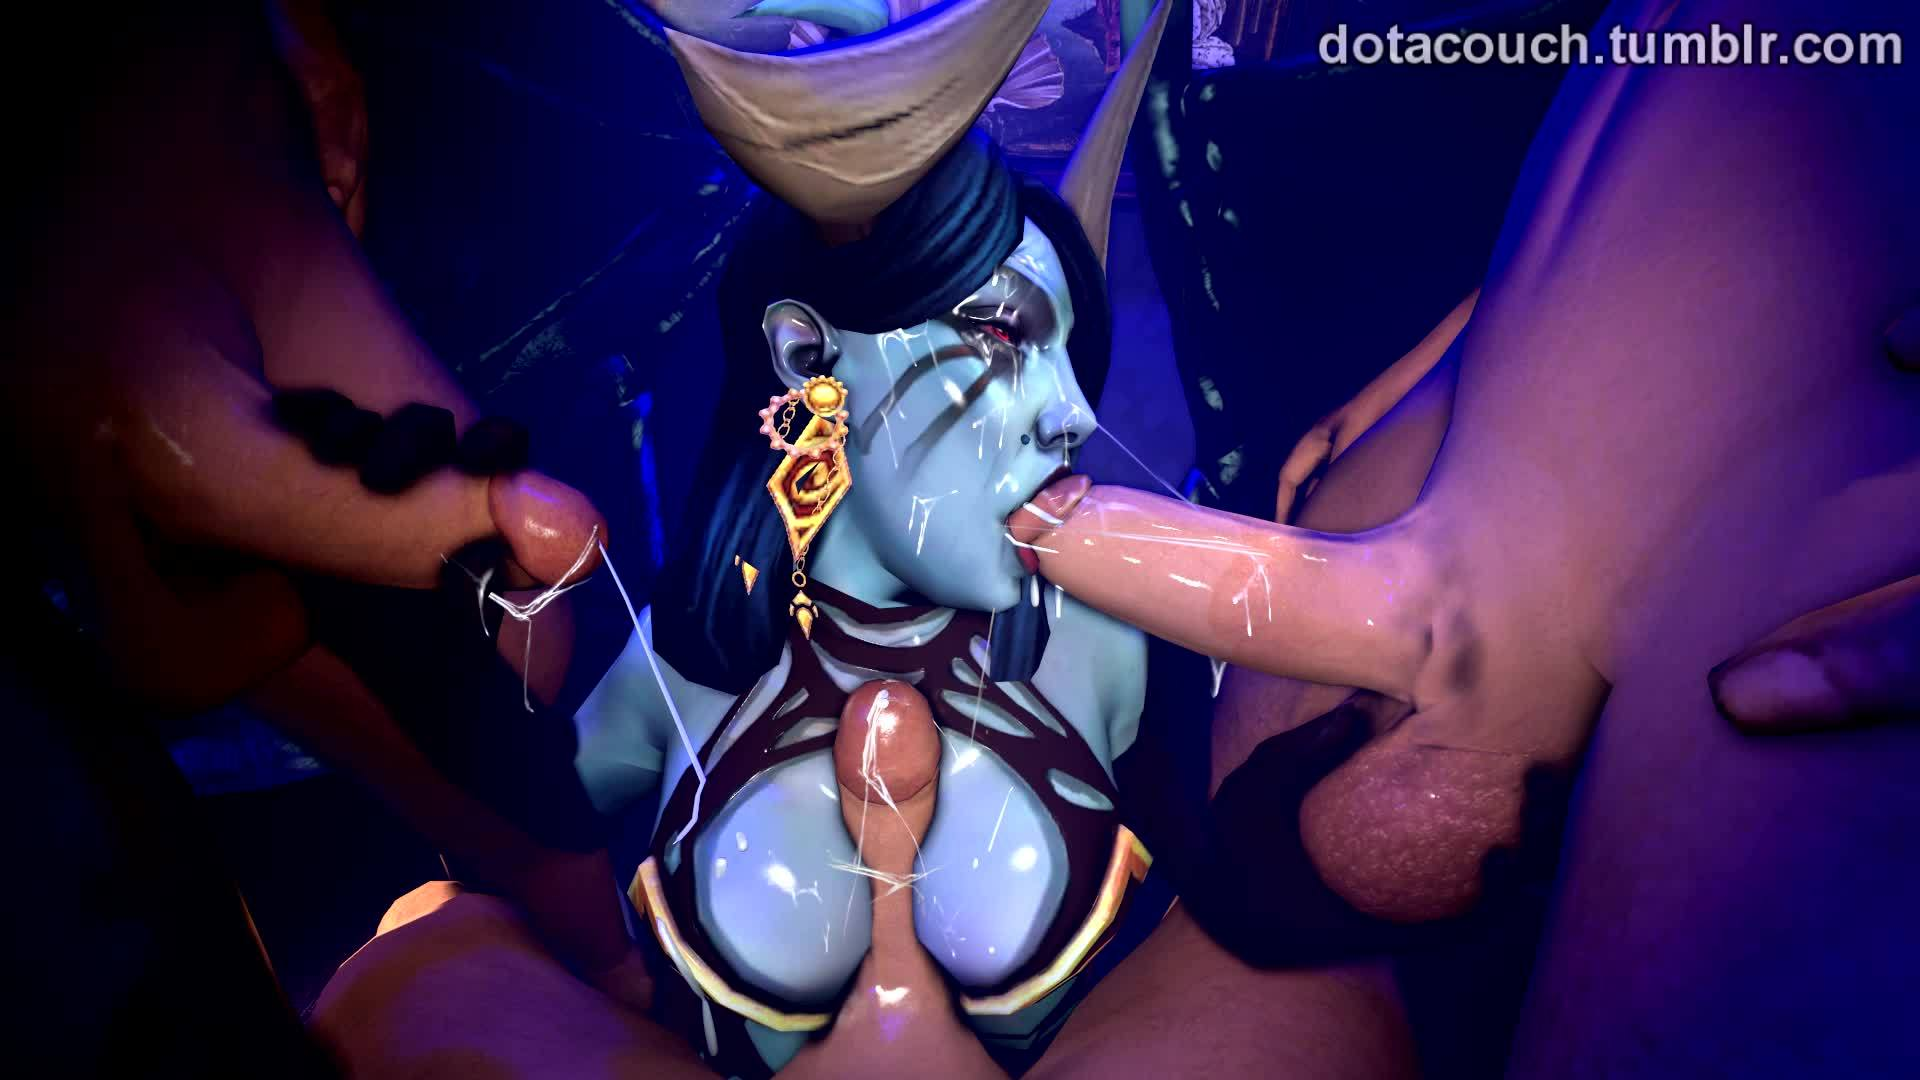 3dWorld of Warcraft porn crack nude picture